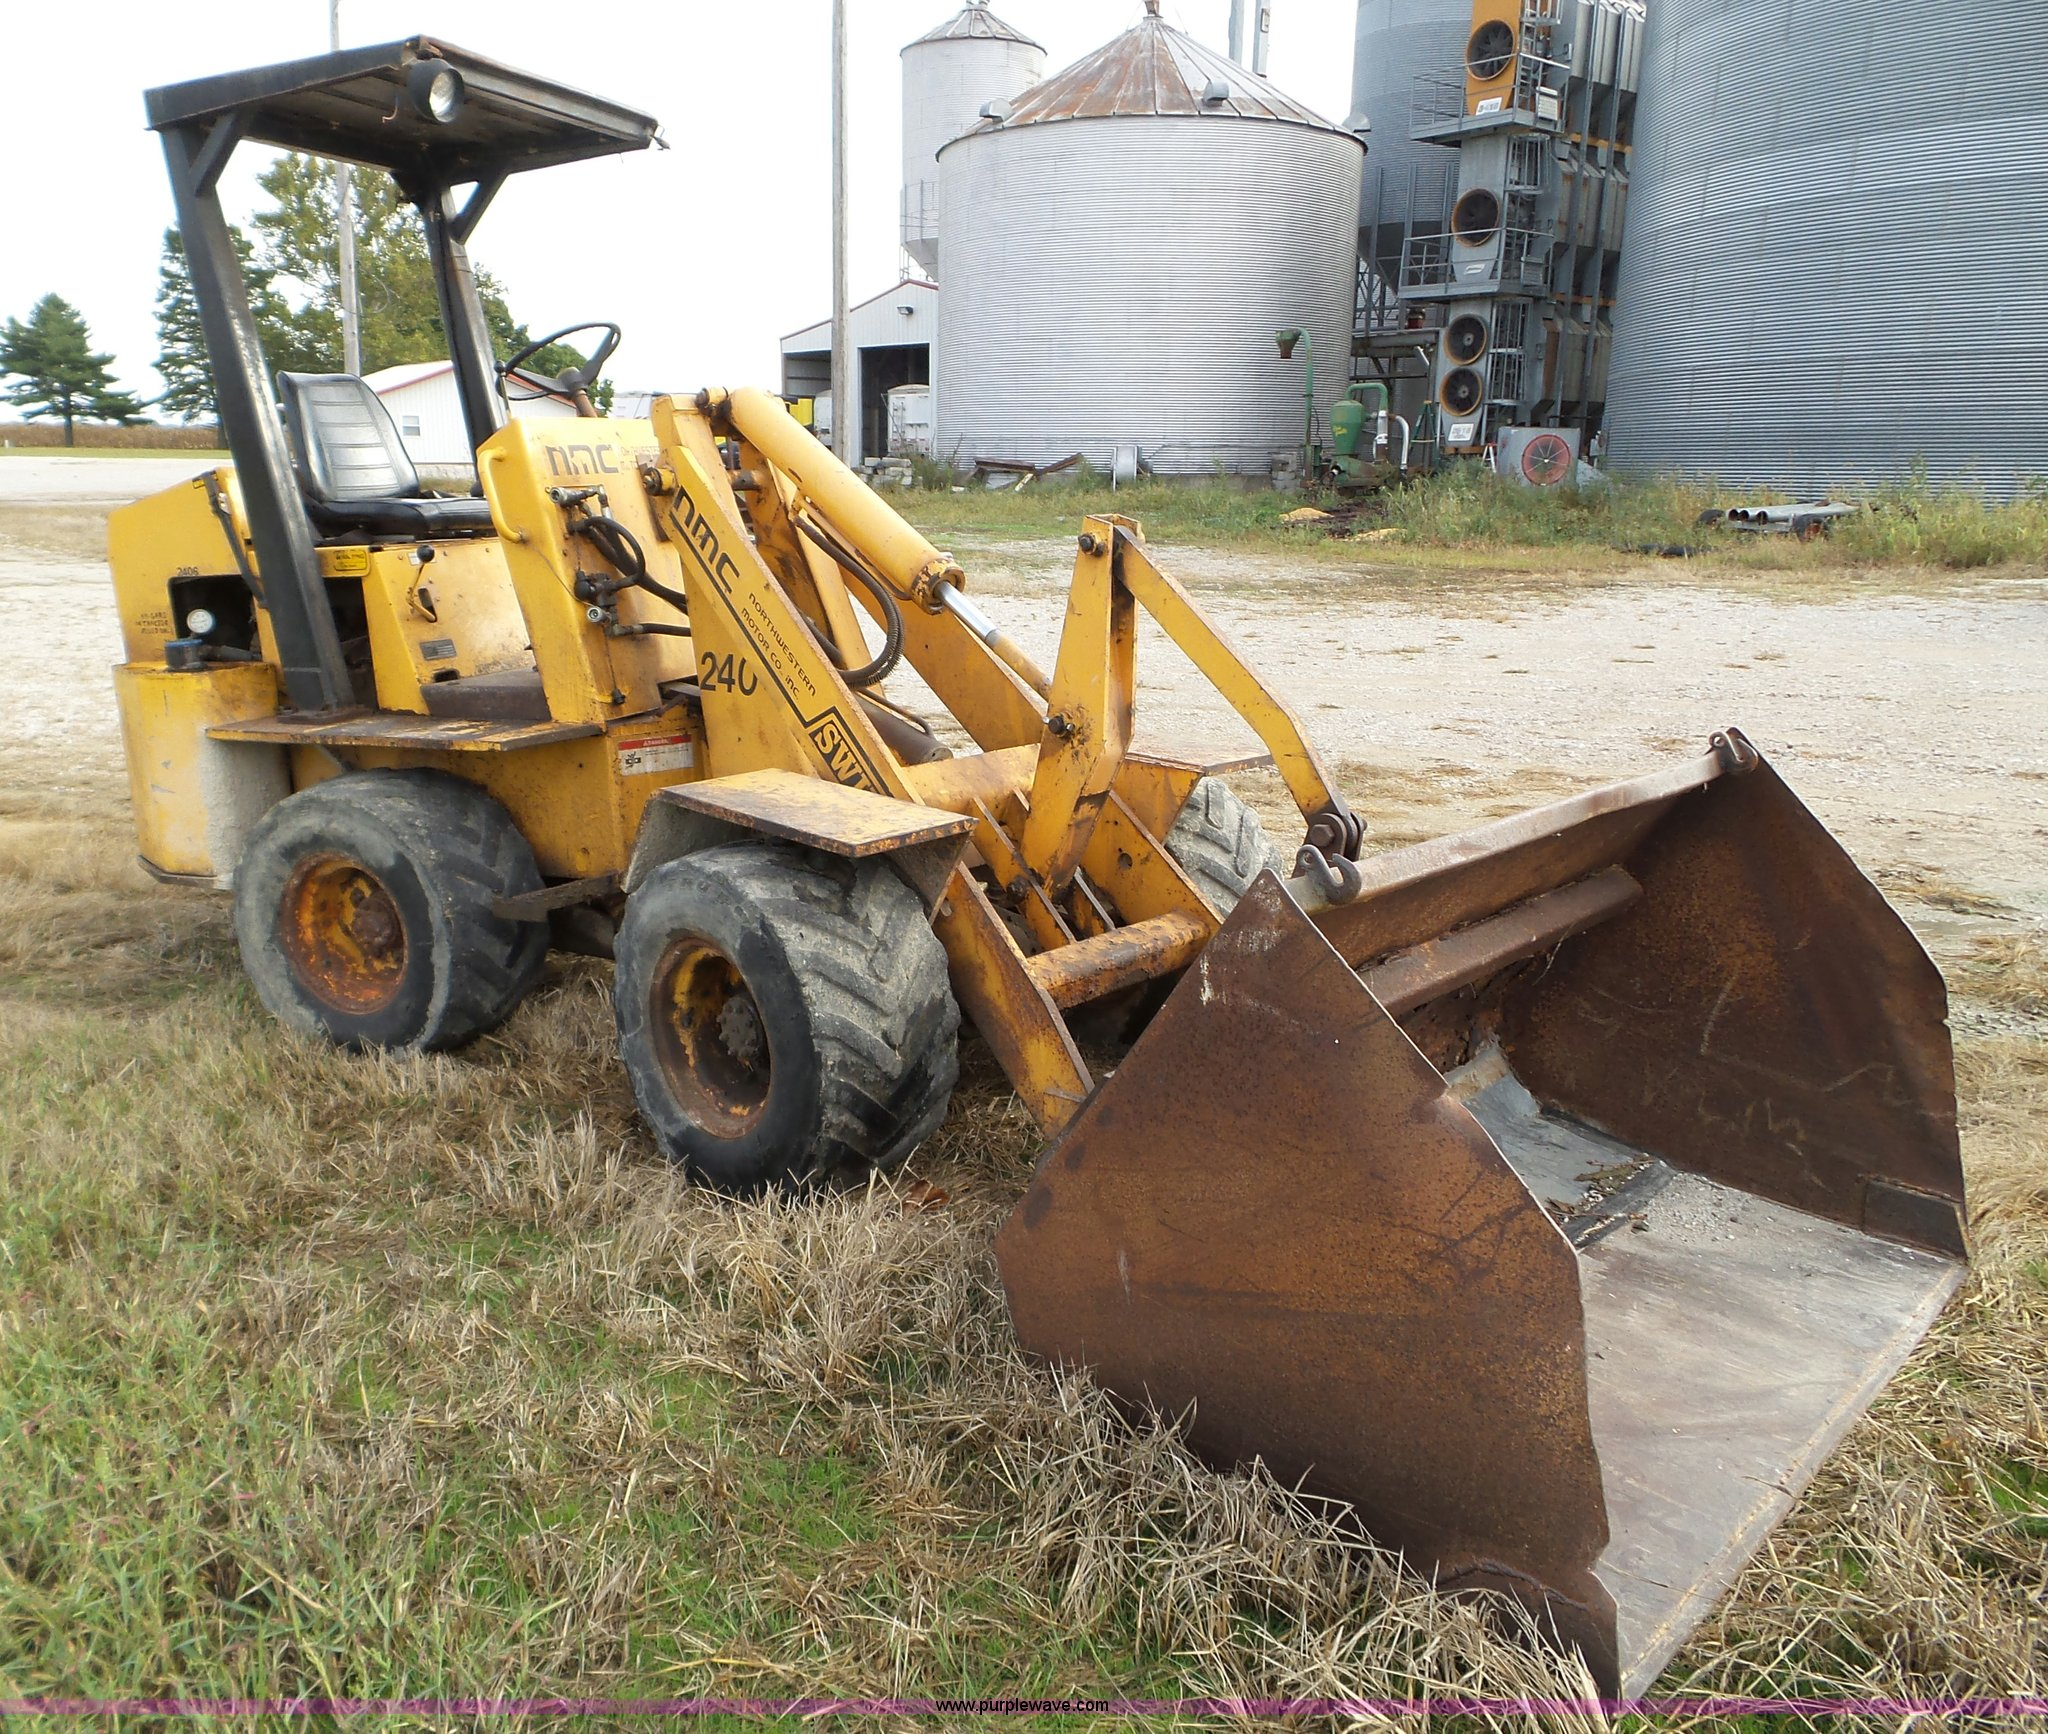 1994 NMC Swinger 240 wheel loader | Item L5036 | SOLD! Novem